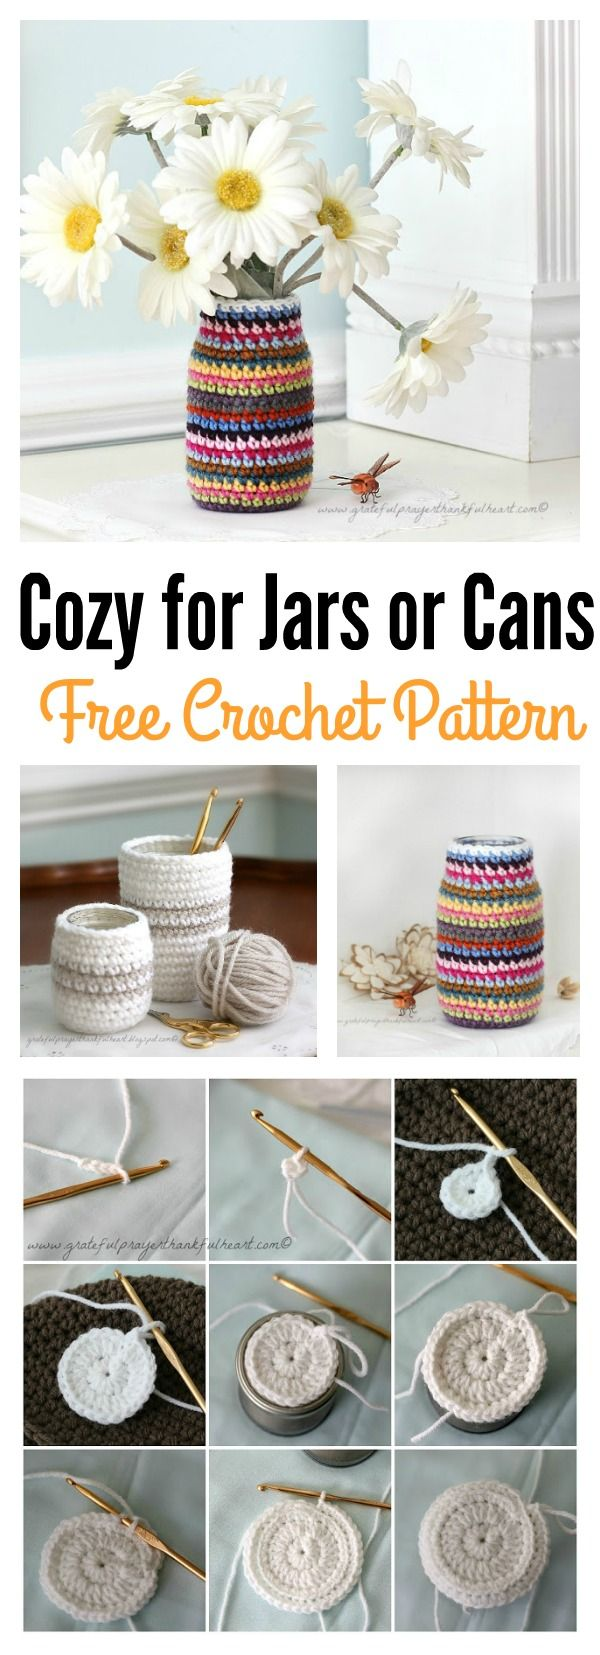 Crochet Cozy Free Pattern for Jars or Cans | Pinterest | Frascos ...